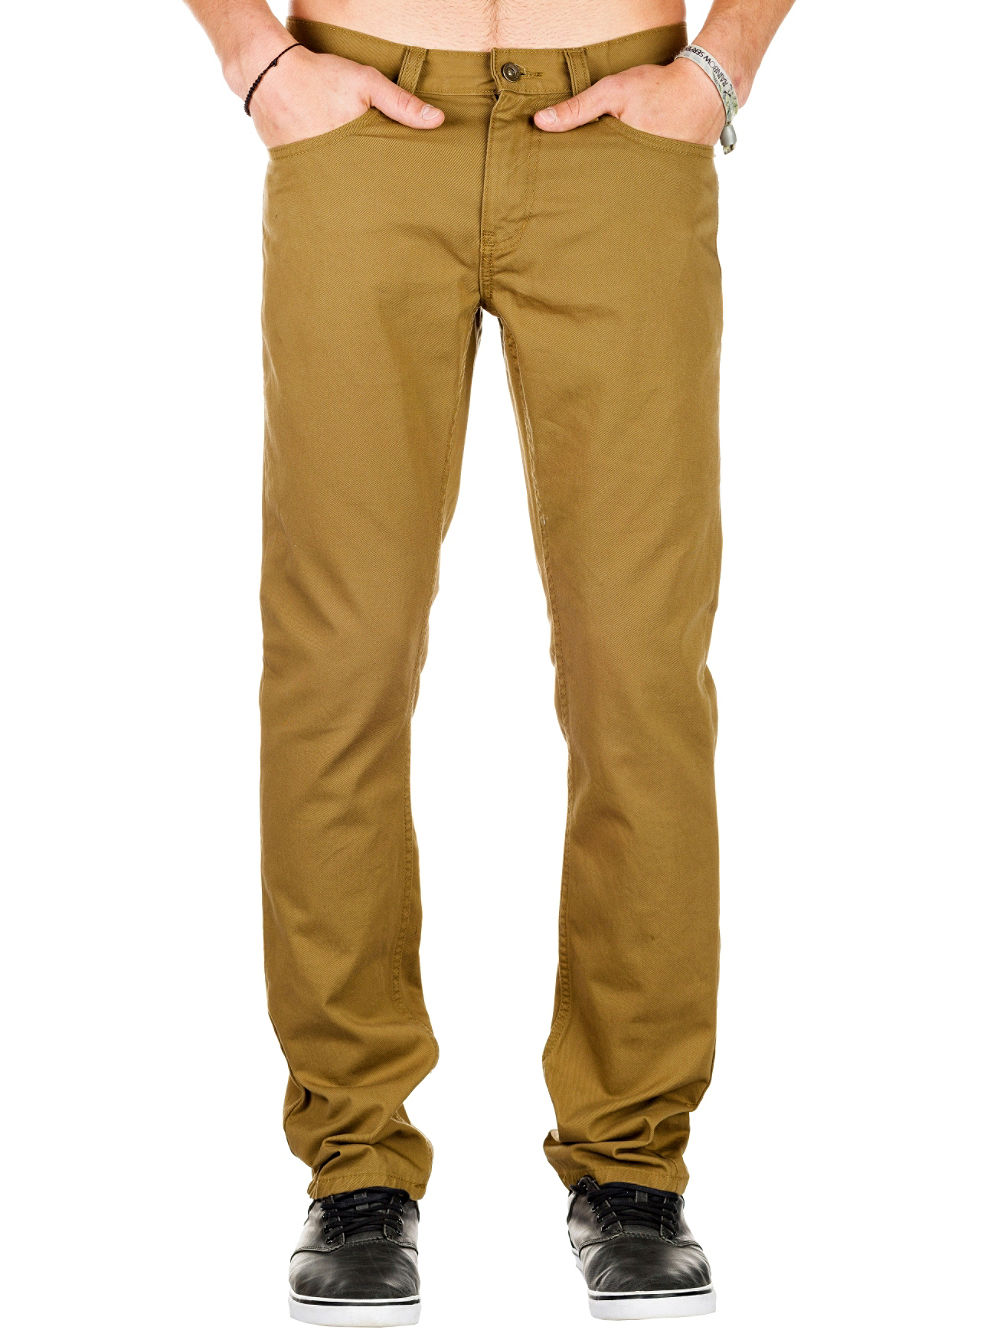 Buy Free World Messenger Pants online at blue-tomato.com